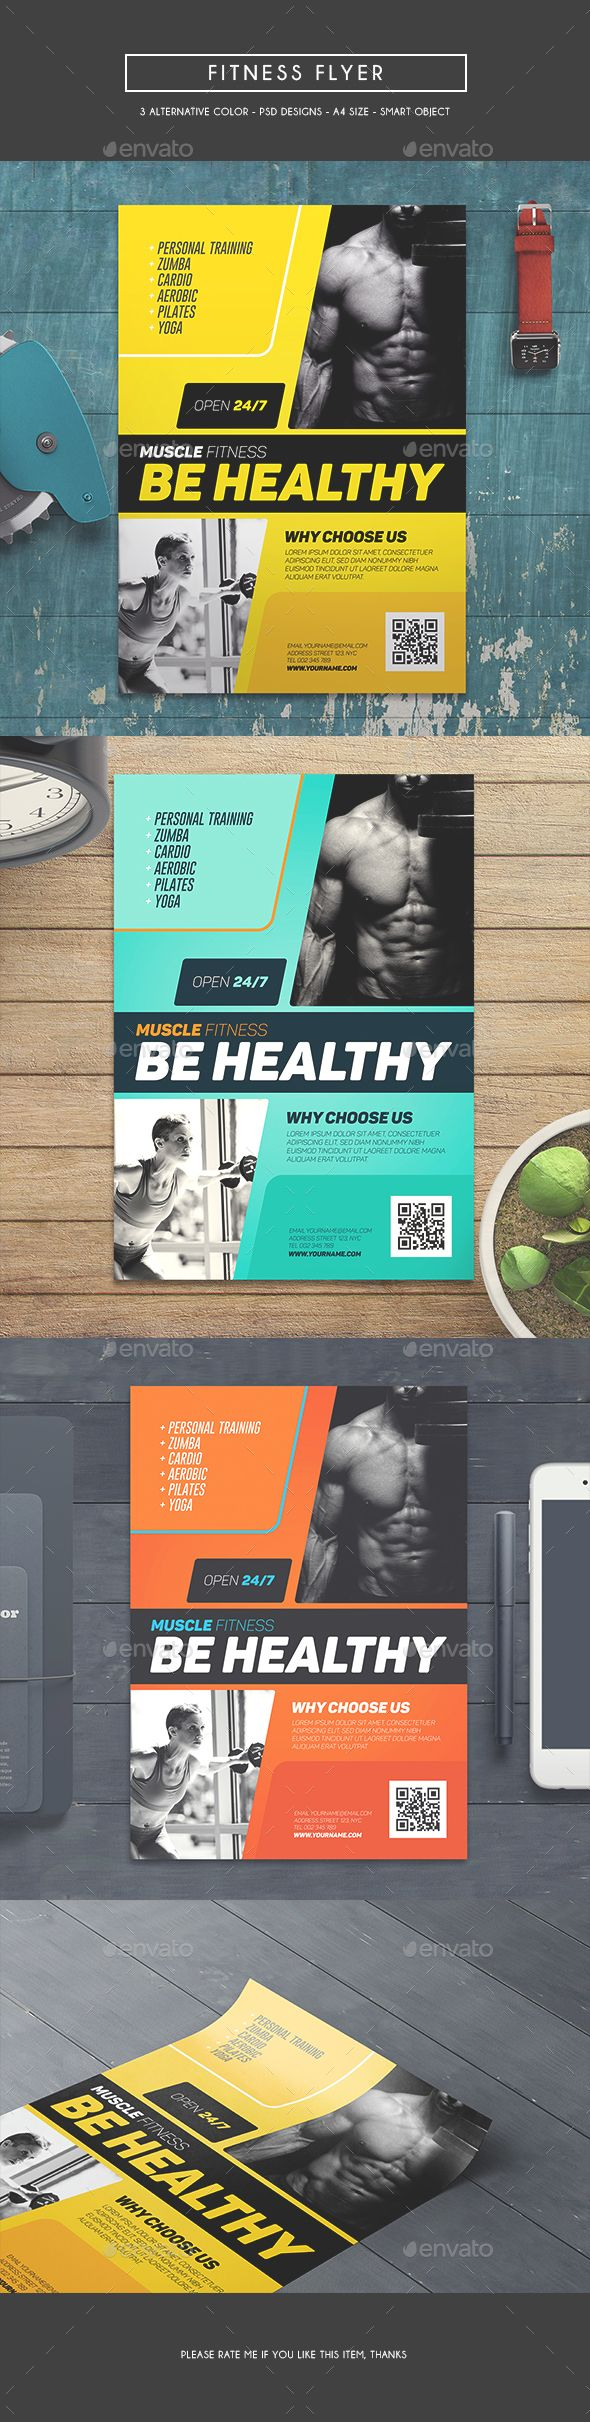 Fitness Flyer Template PSD Download Here Graphicriver